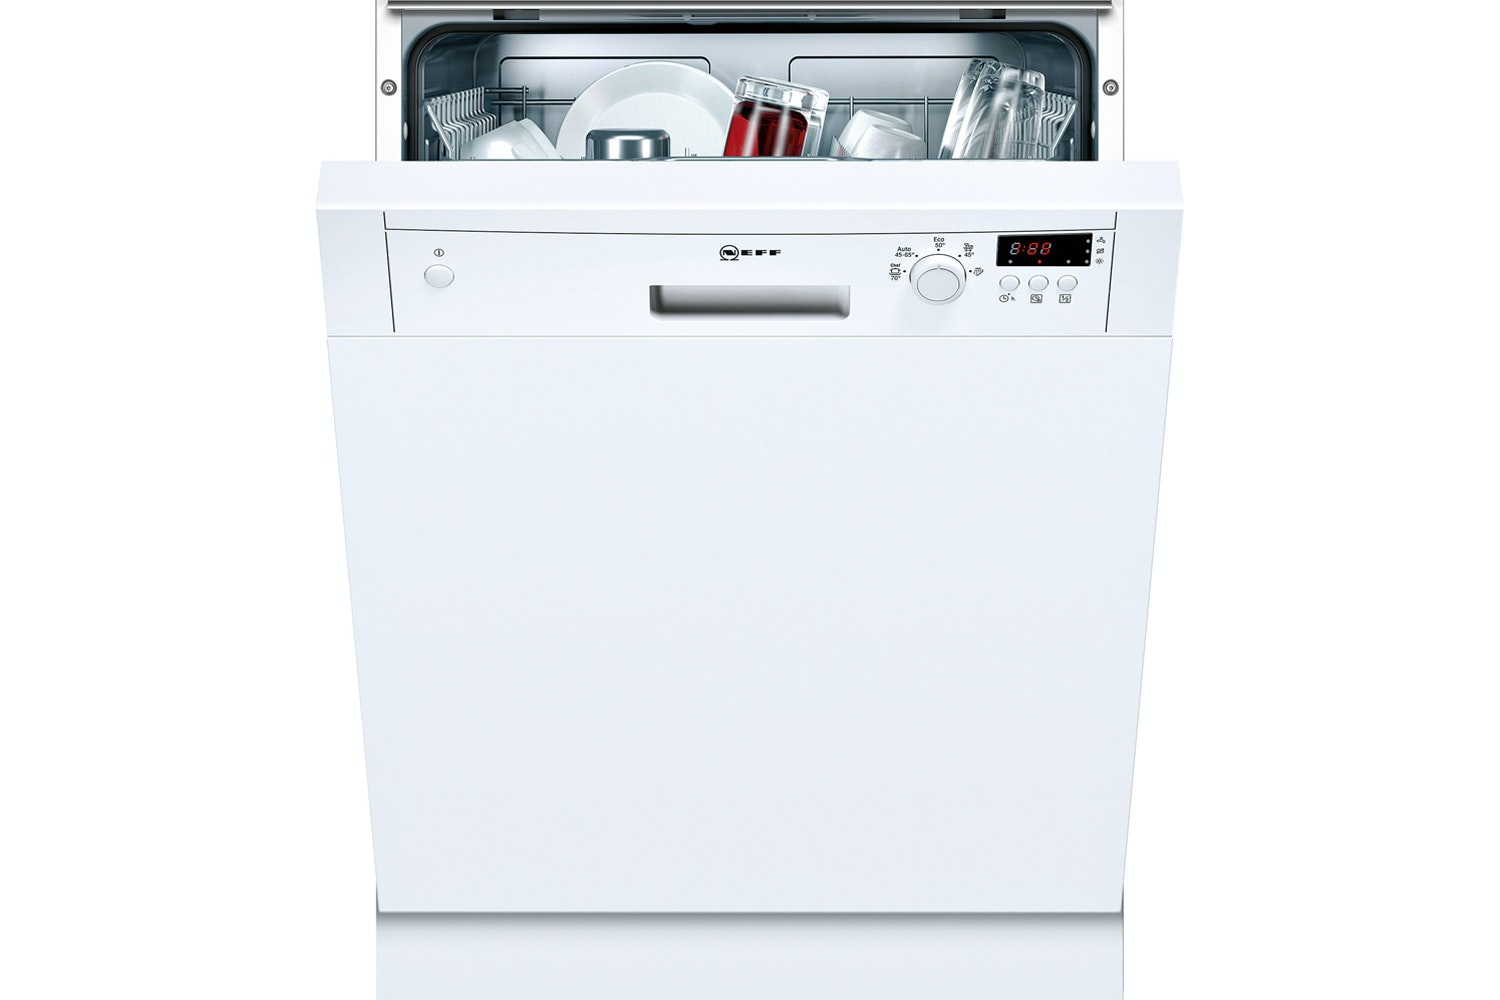 Neff Semi integrated Dishwasher | 12 Place | S41E50W1GB